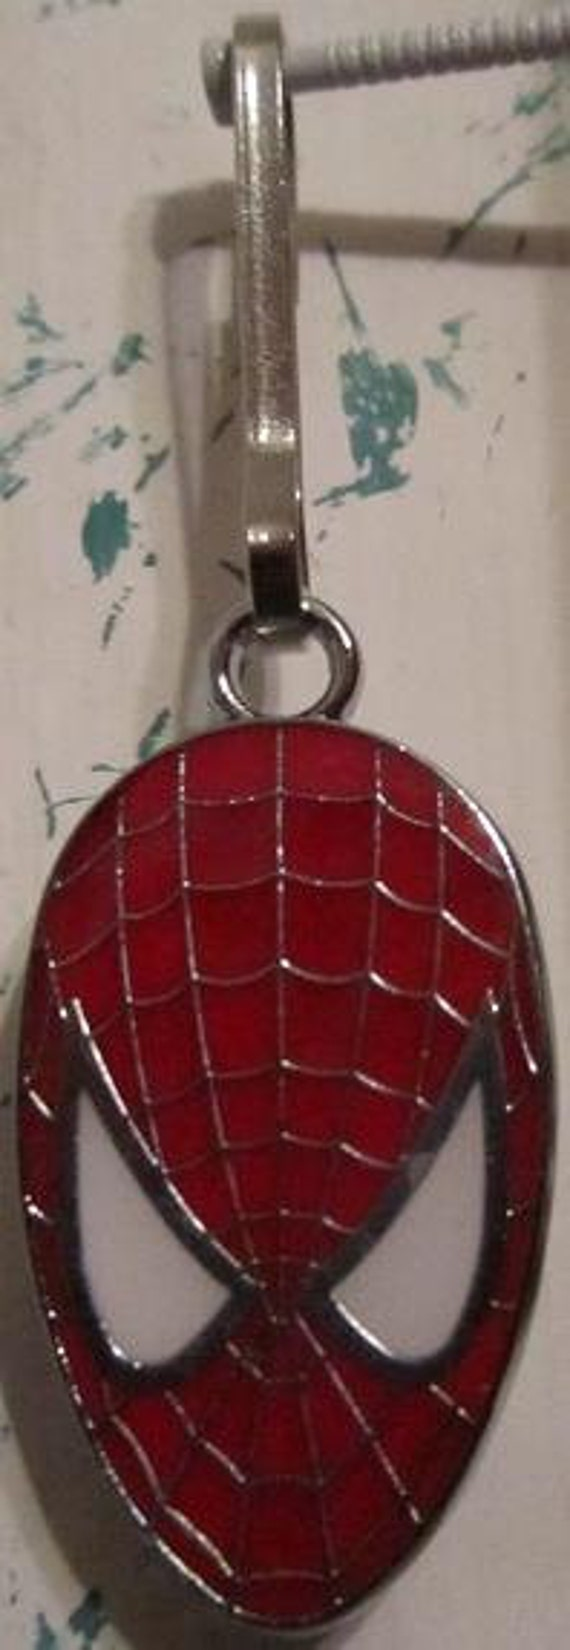 Marvel Comics Amazing Spider-Man Keychain Key Fob Zipper Pull Dog Cat Collar Charm FREE US SHIPPING